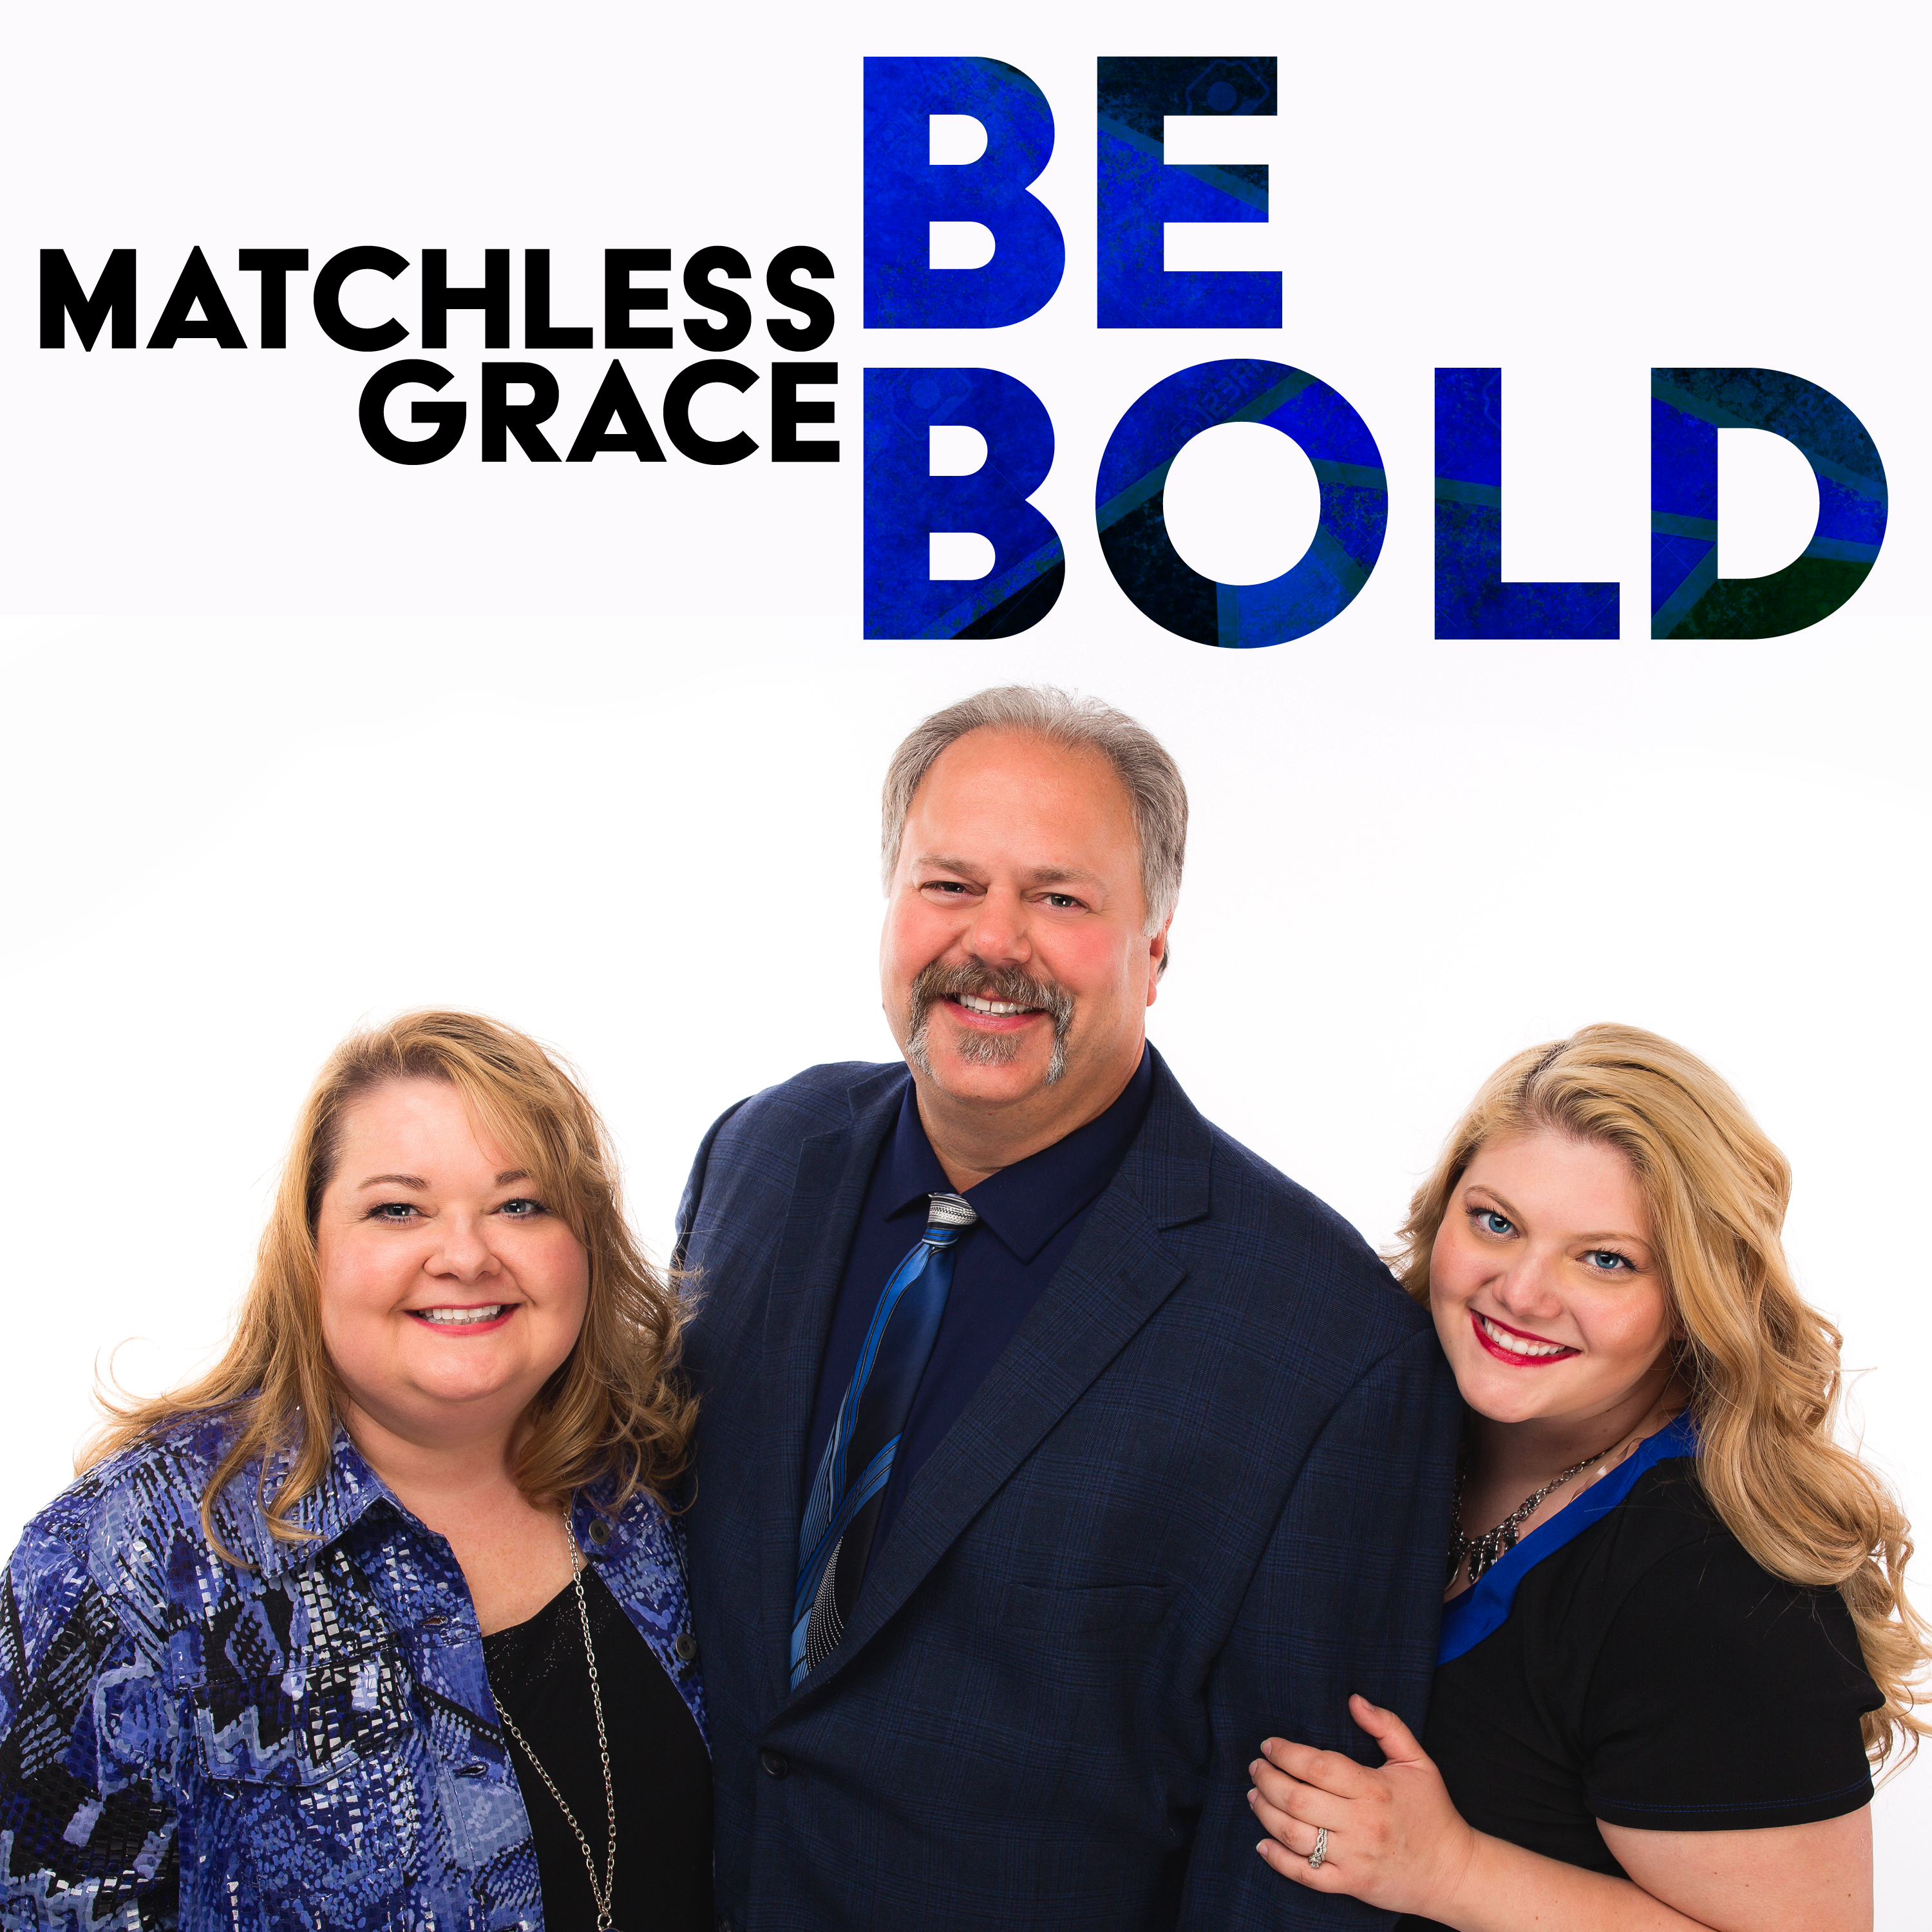 Matchless Grace sing Be Bold